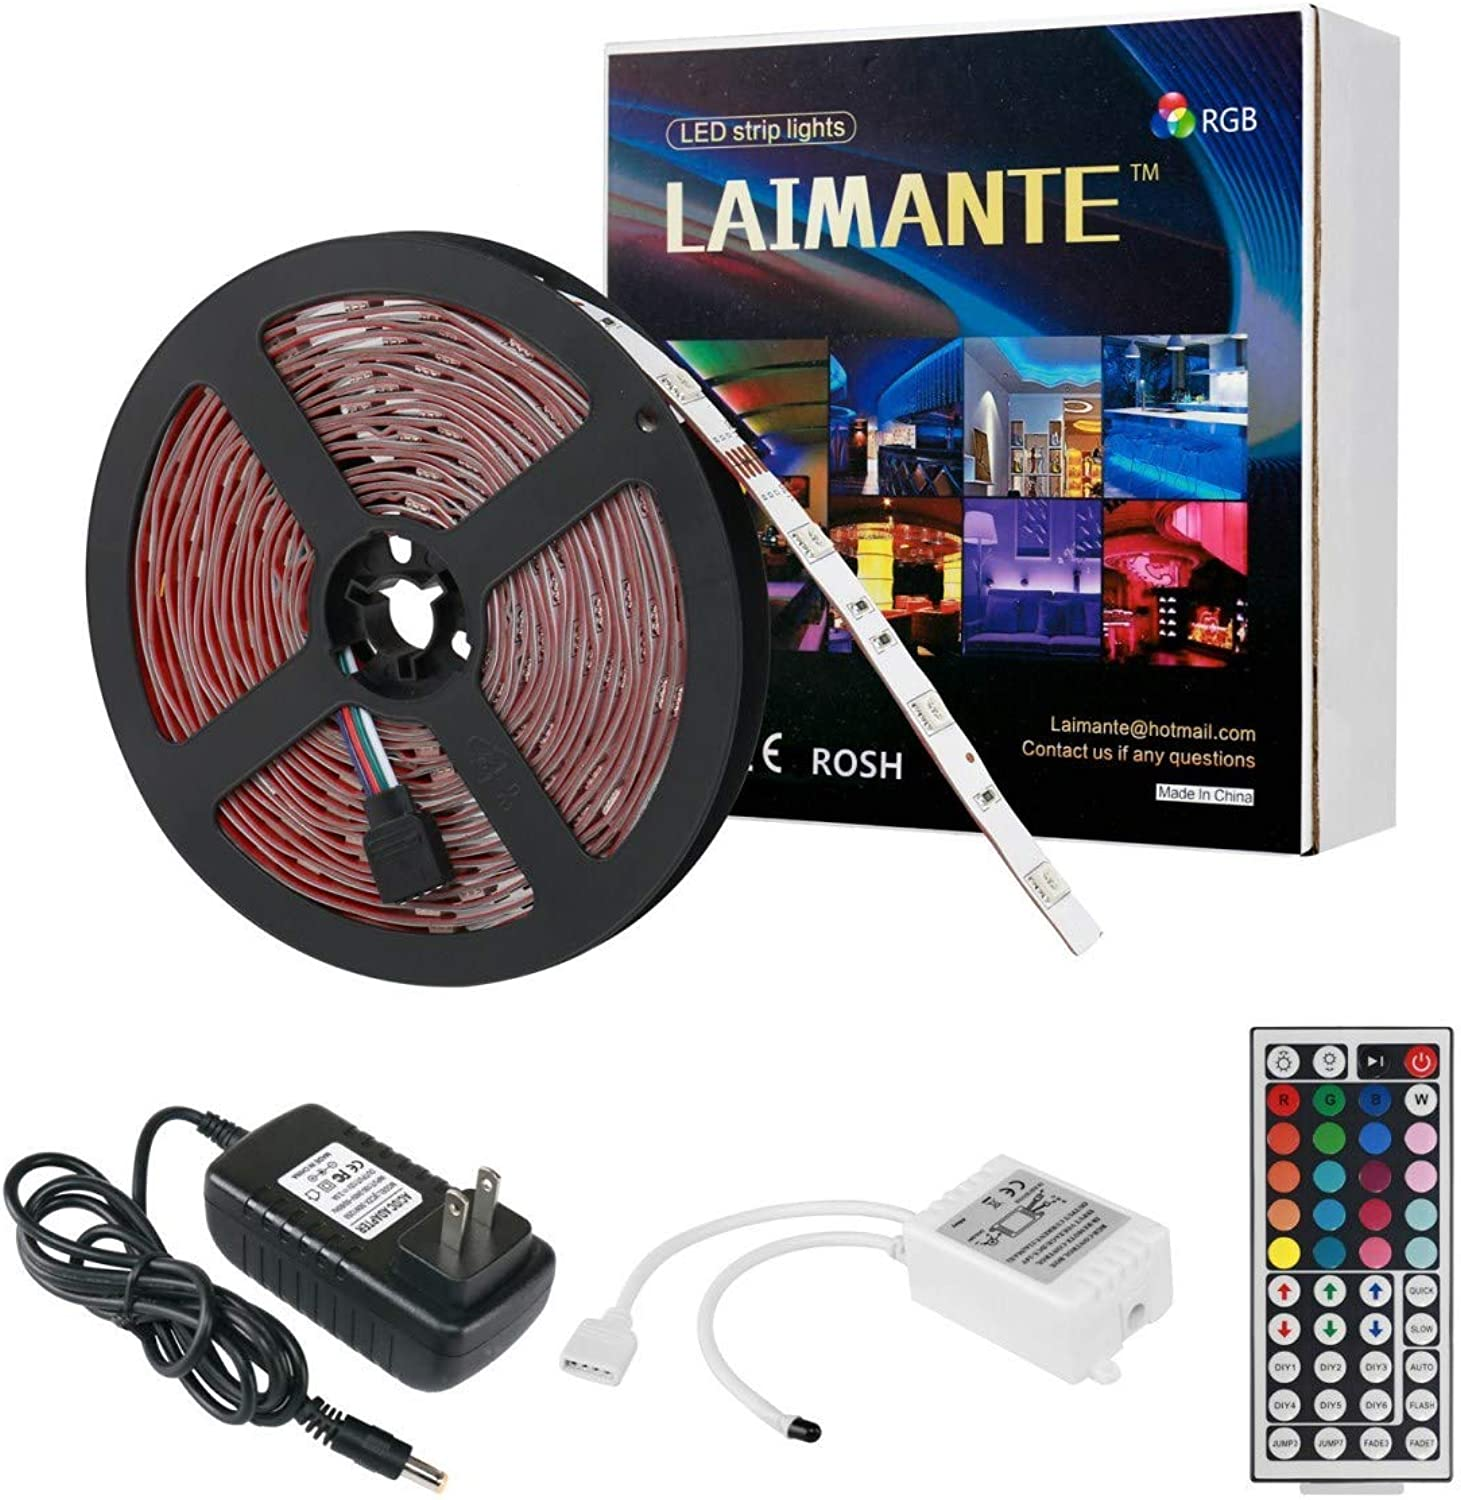 Laimante RGB Led Strip Lights Kit150 Units 5050 LEDs16.4ft 5m 12V DC Led Ribbon Extra Adhesive 3M Tape44 Key IR Remote Controller and UL Listed Power Adapter Included Led Tape Home Decoration